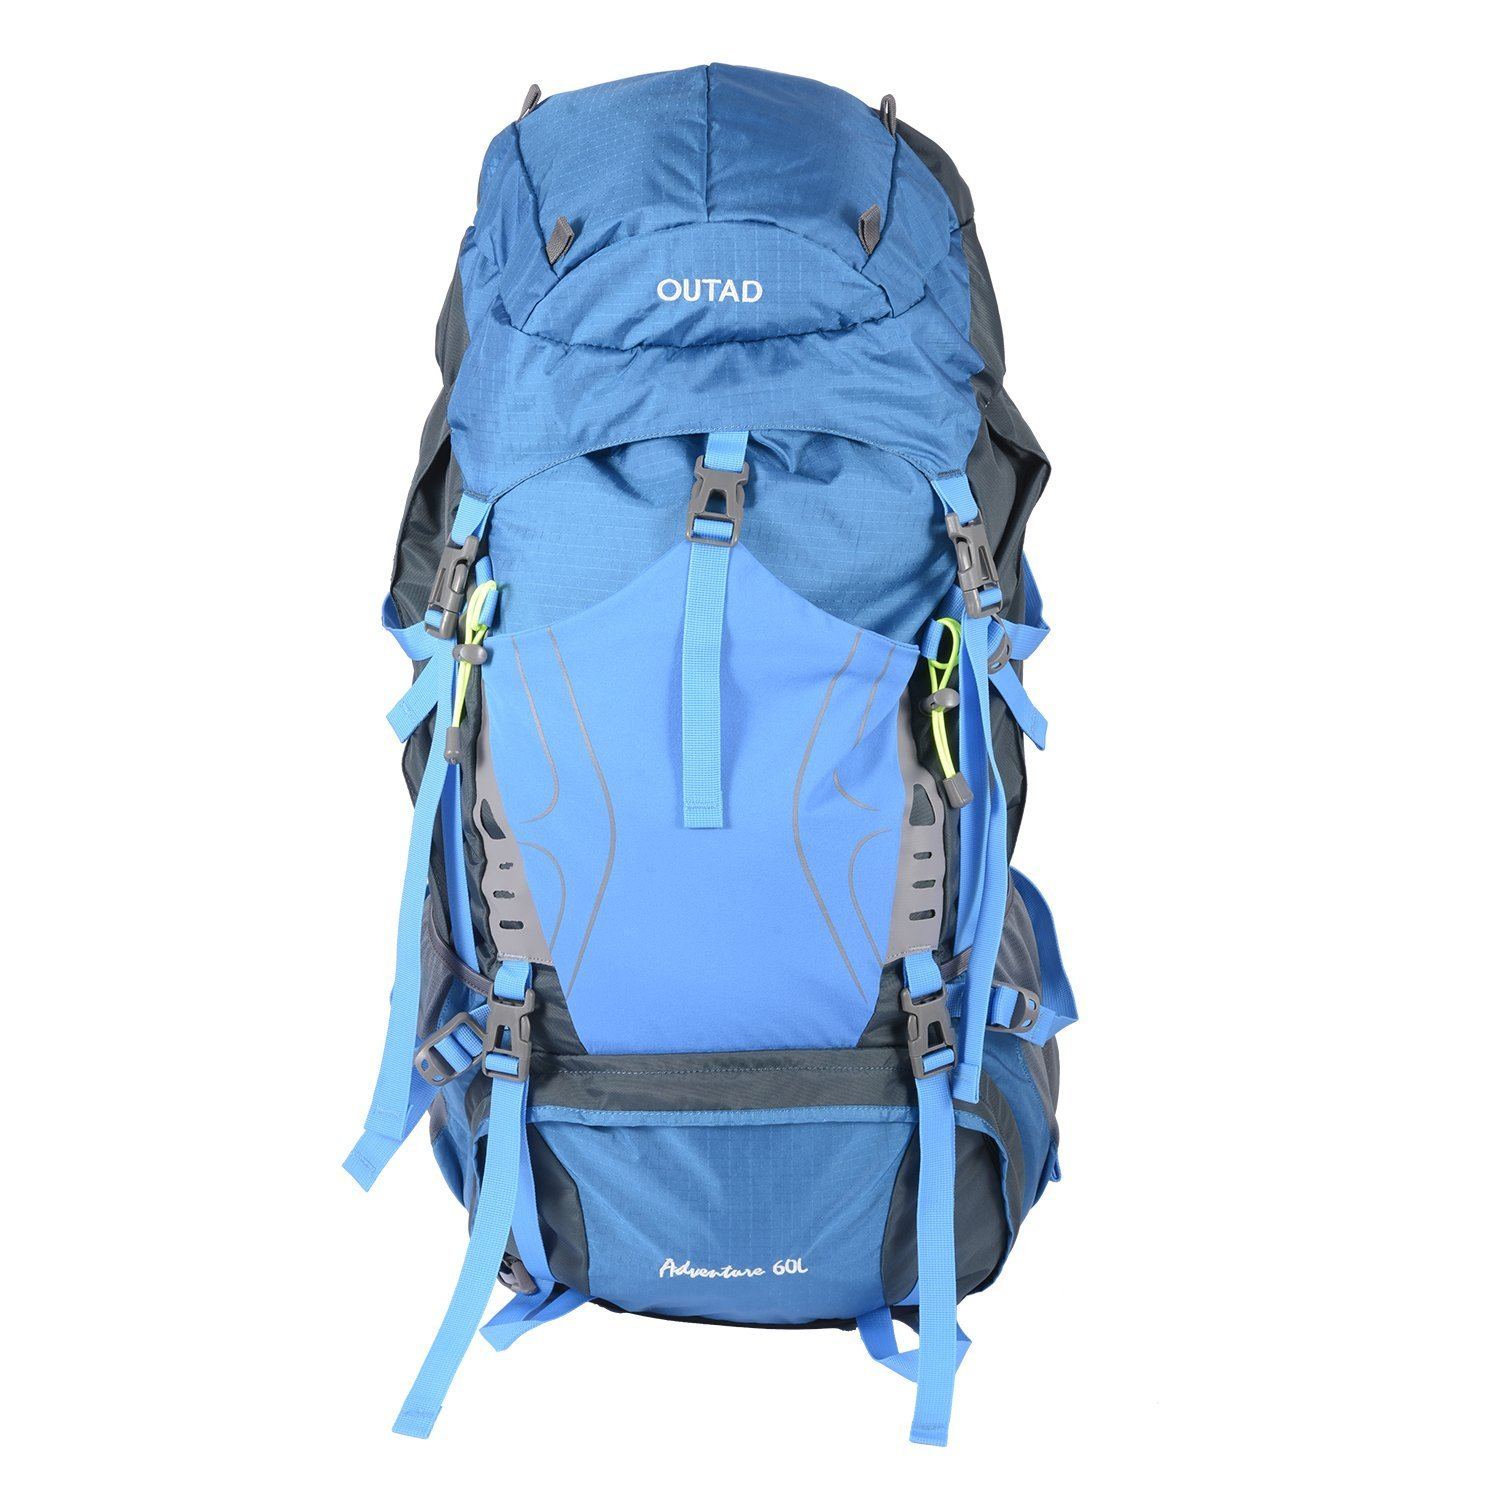 OUTAD Hiking Backpack c971de87f4e1d